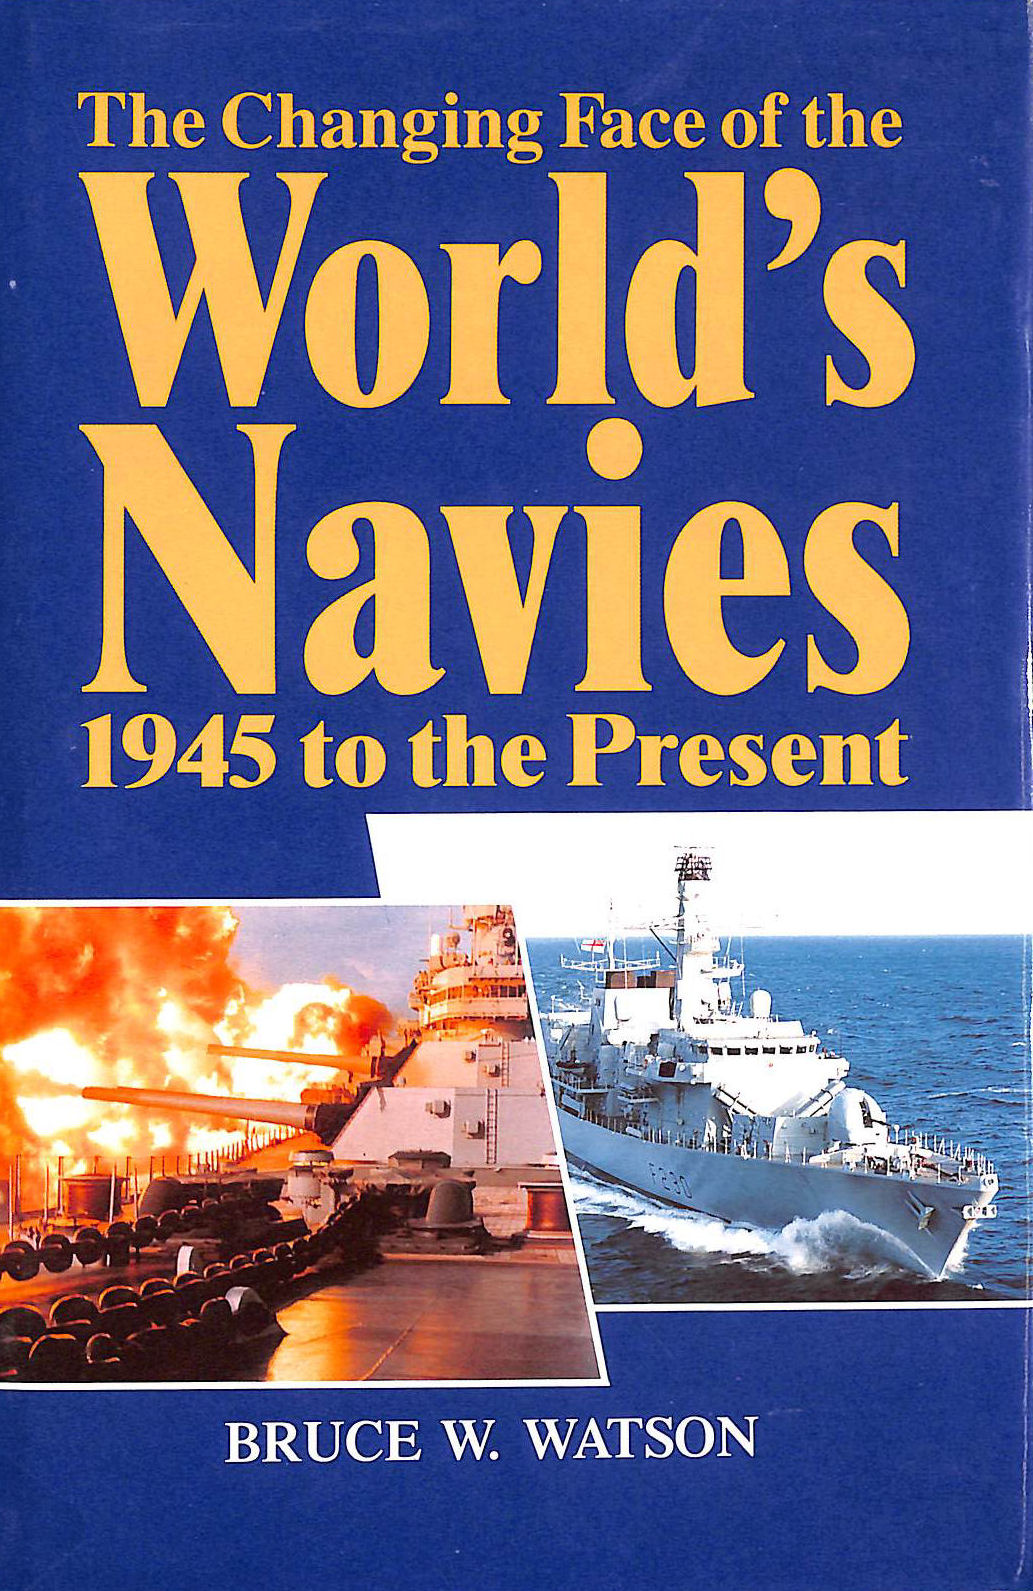 Image for The Changing Face of the World's Navies: 1945 to the Present